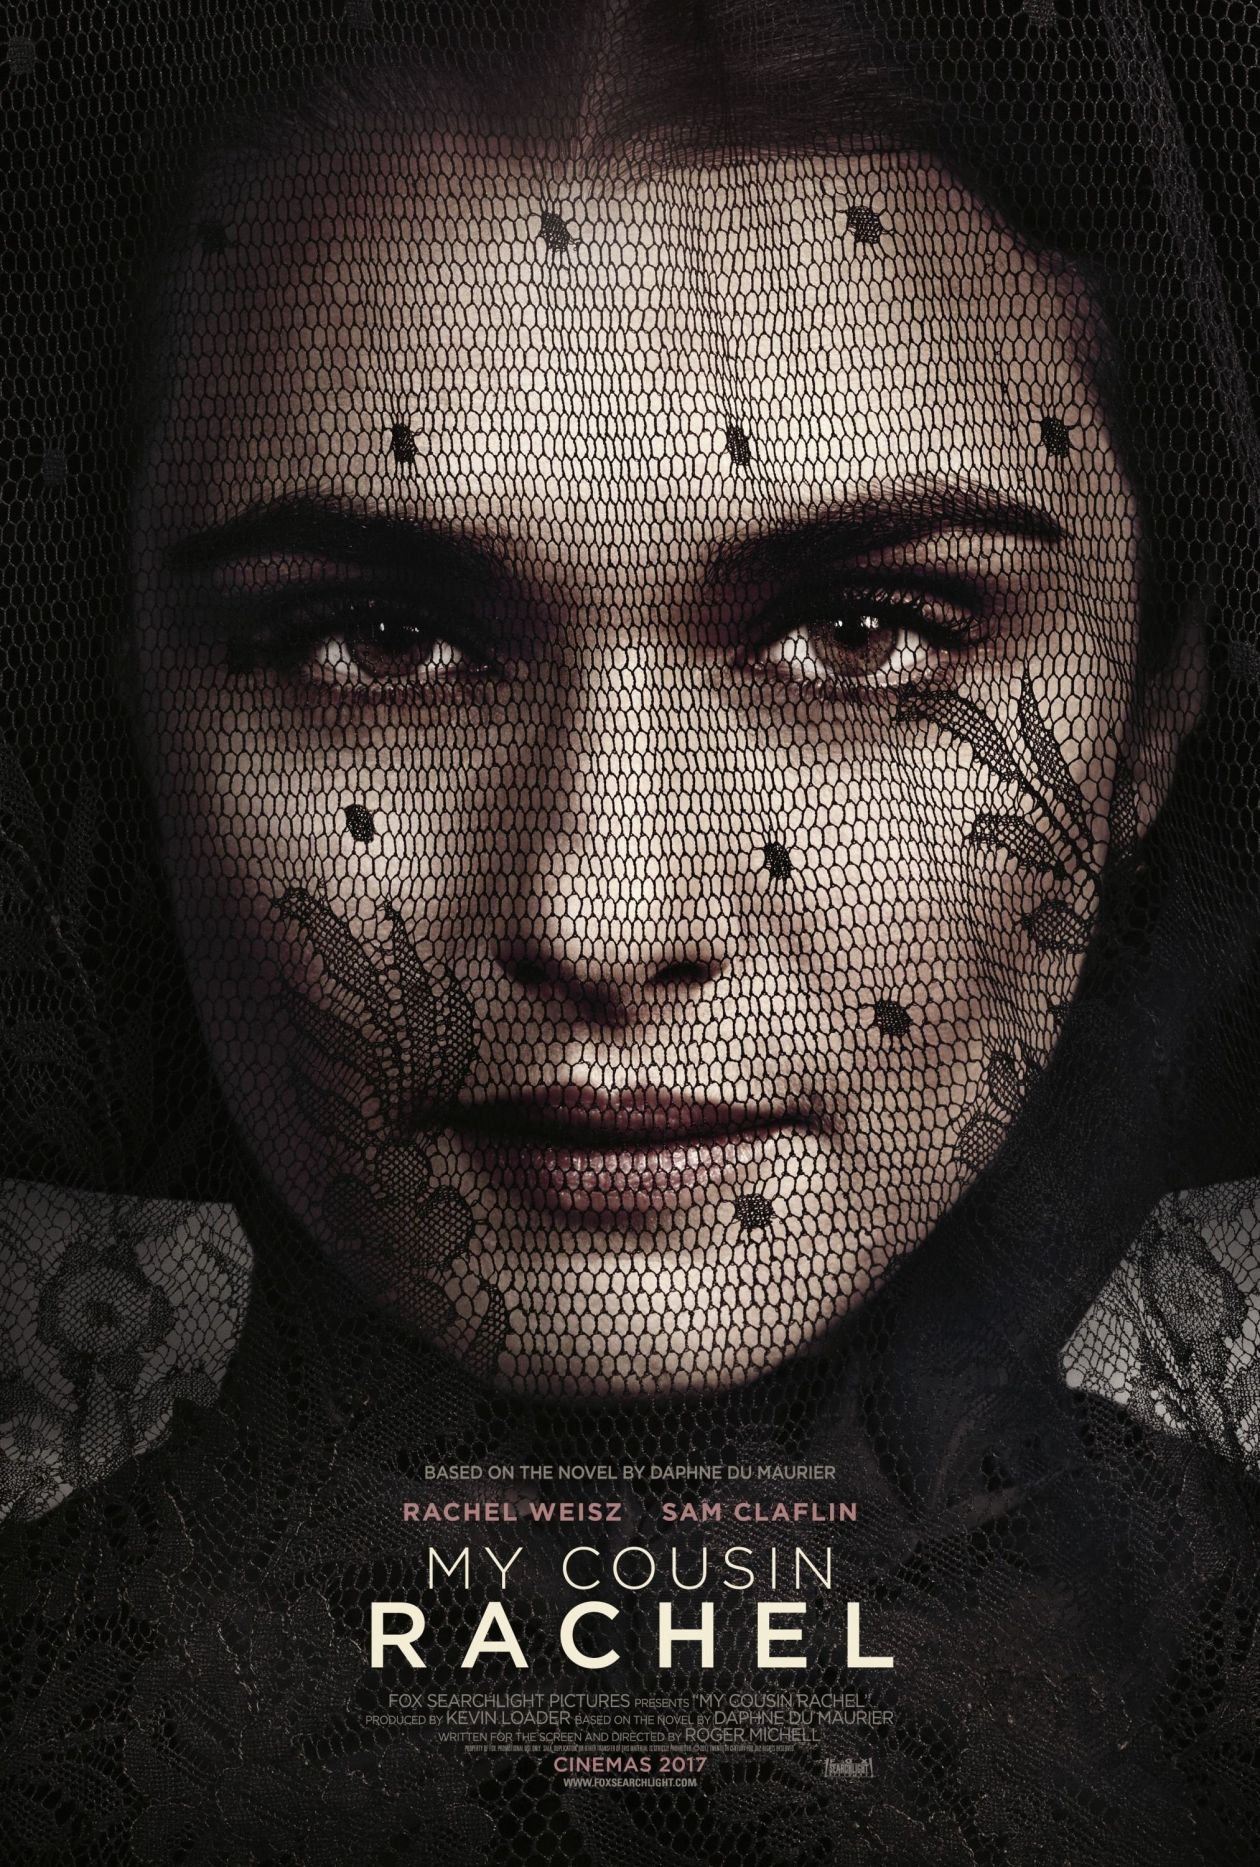 Rachel Weisz | My Cousin Rachel / Roger Michell / Movie Poster / Affiche film 2017